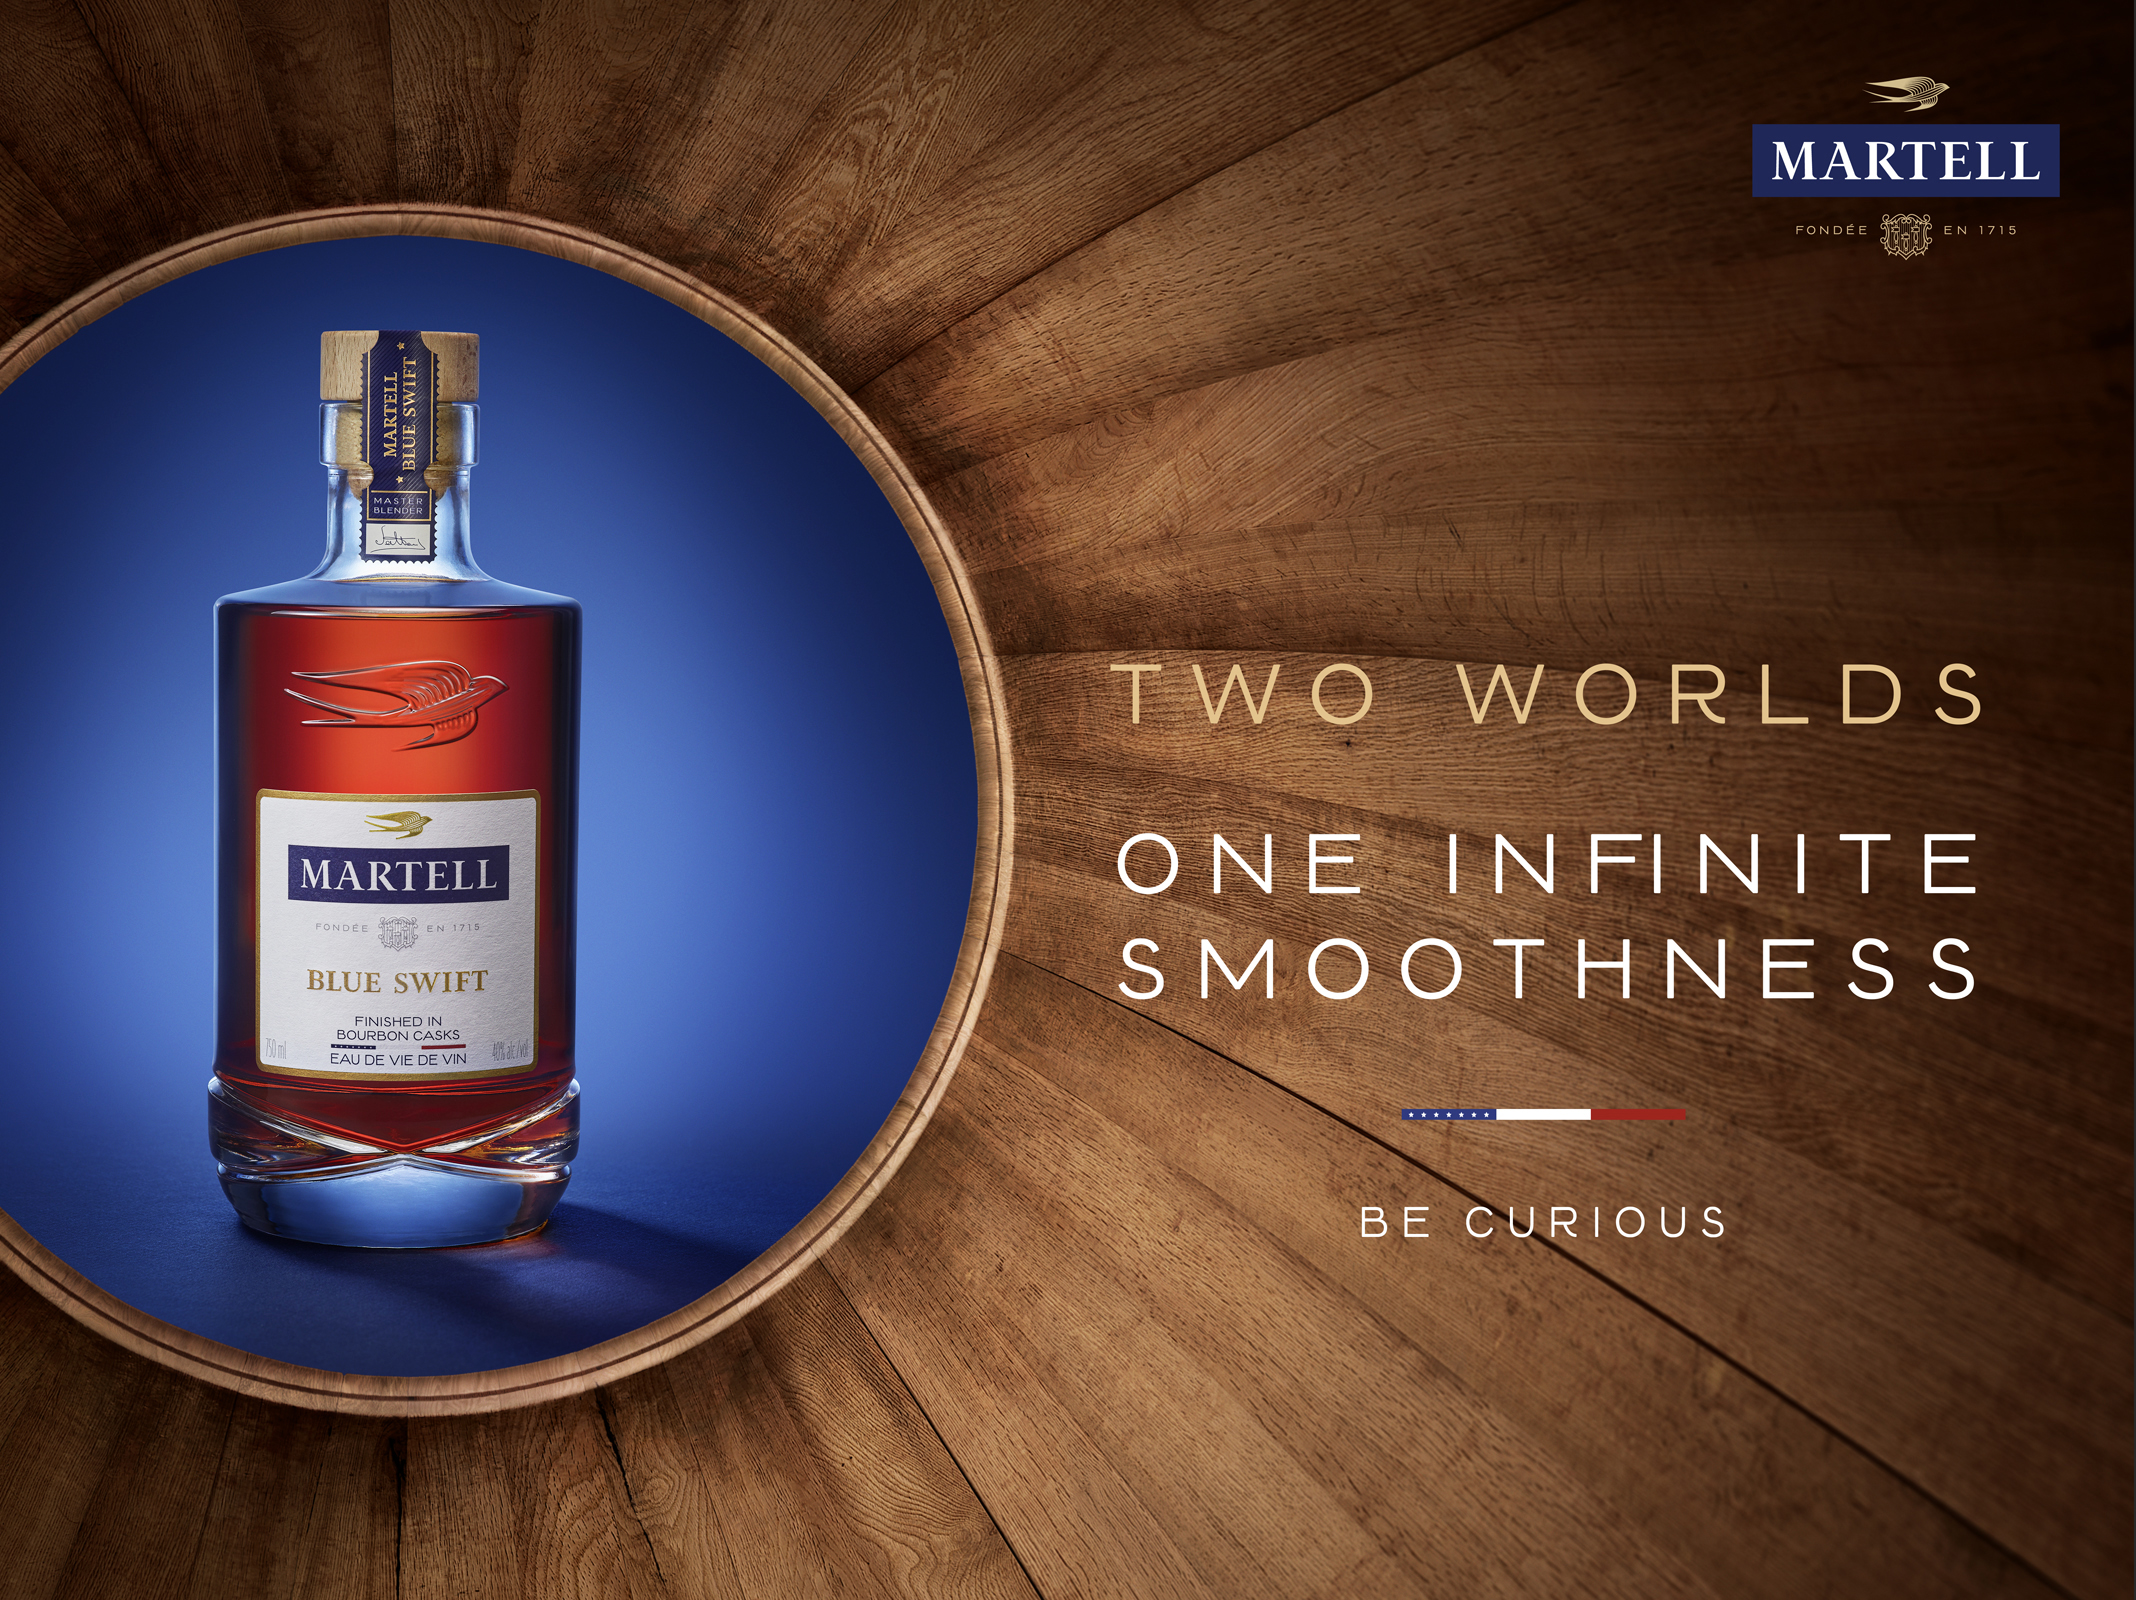 Roberto Badin_Martell_Campaign_Two Worlds_Advertising_Thomas Treuhaft_Photography 1